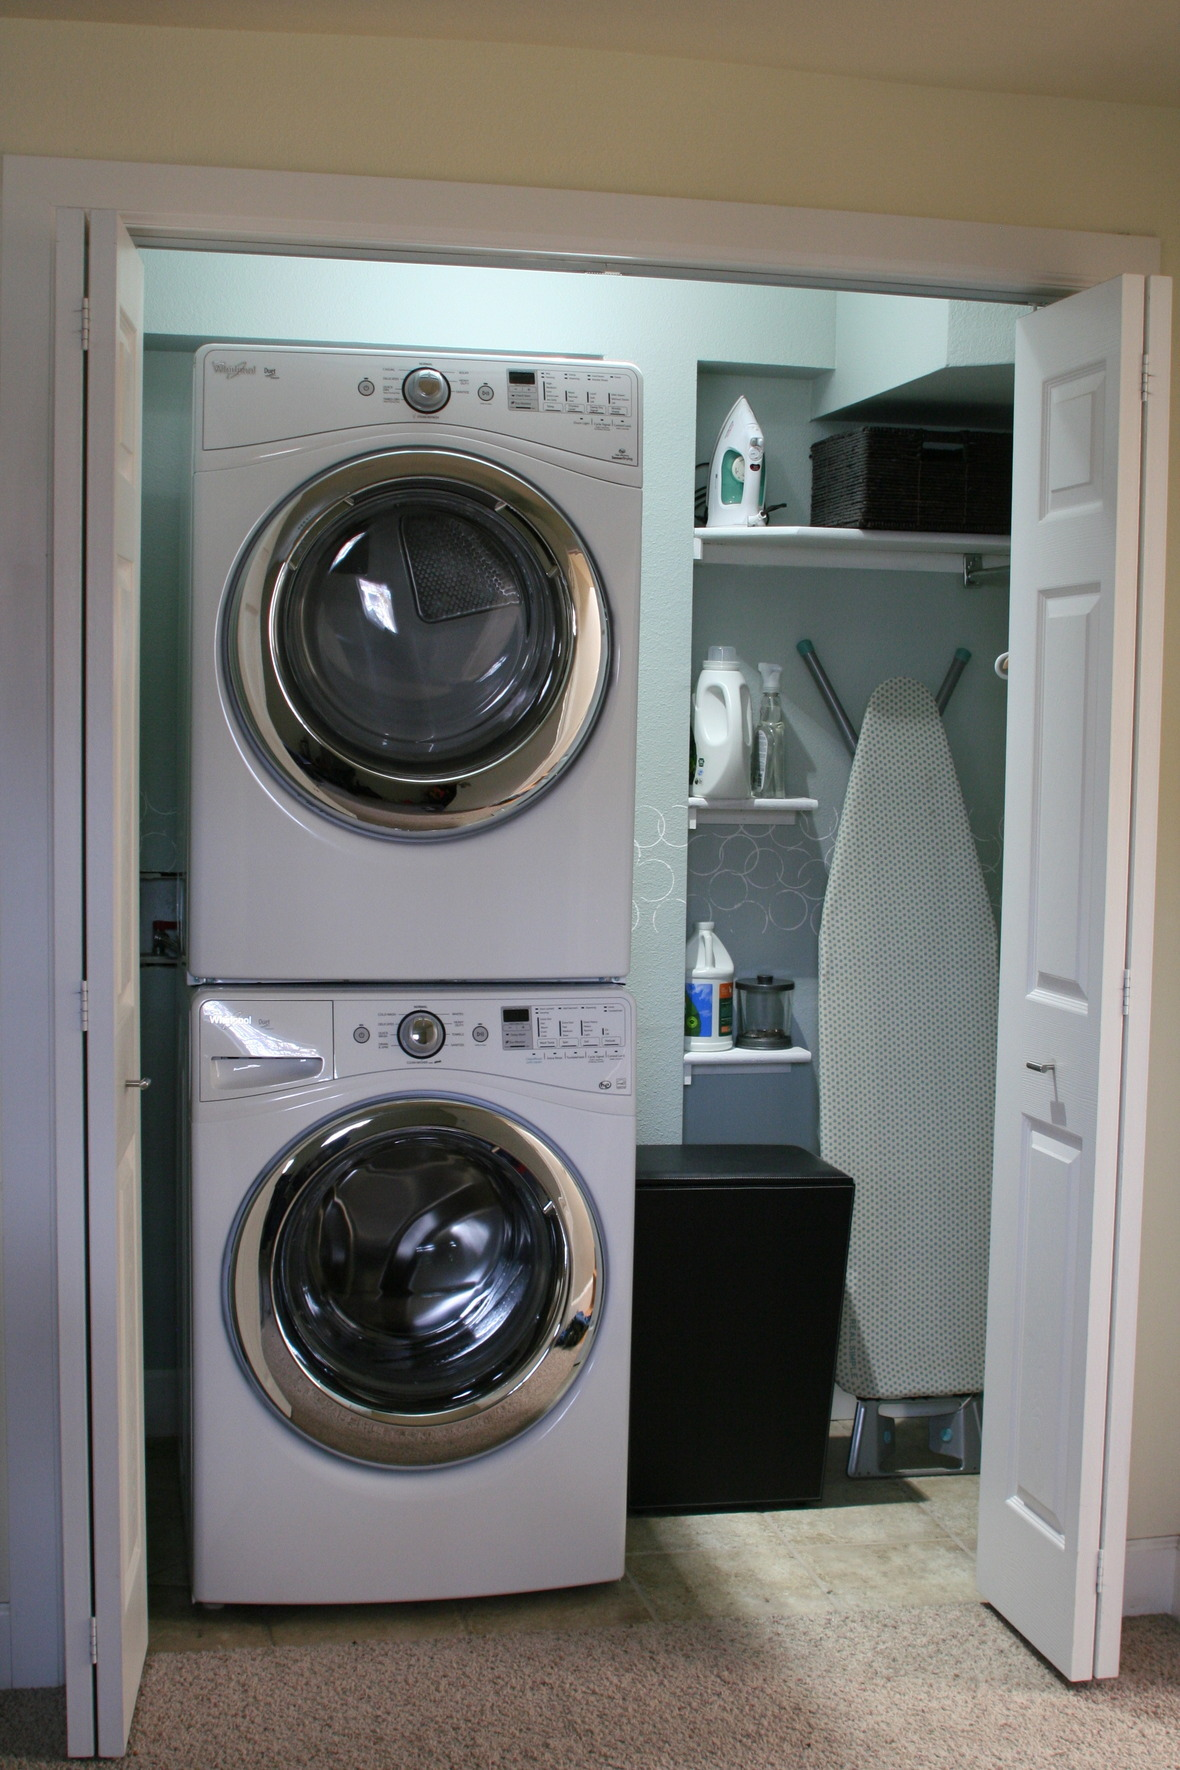 7 Small Space Makeovers: 5 Amazing Real-Life Laundry Room Makeovers (plus Over 100 More Ideas